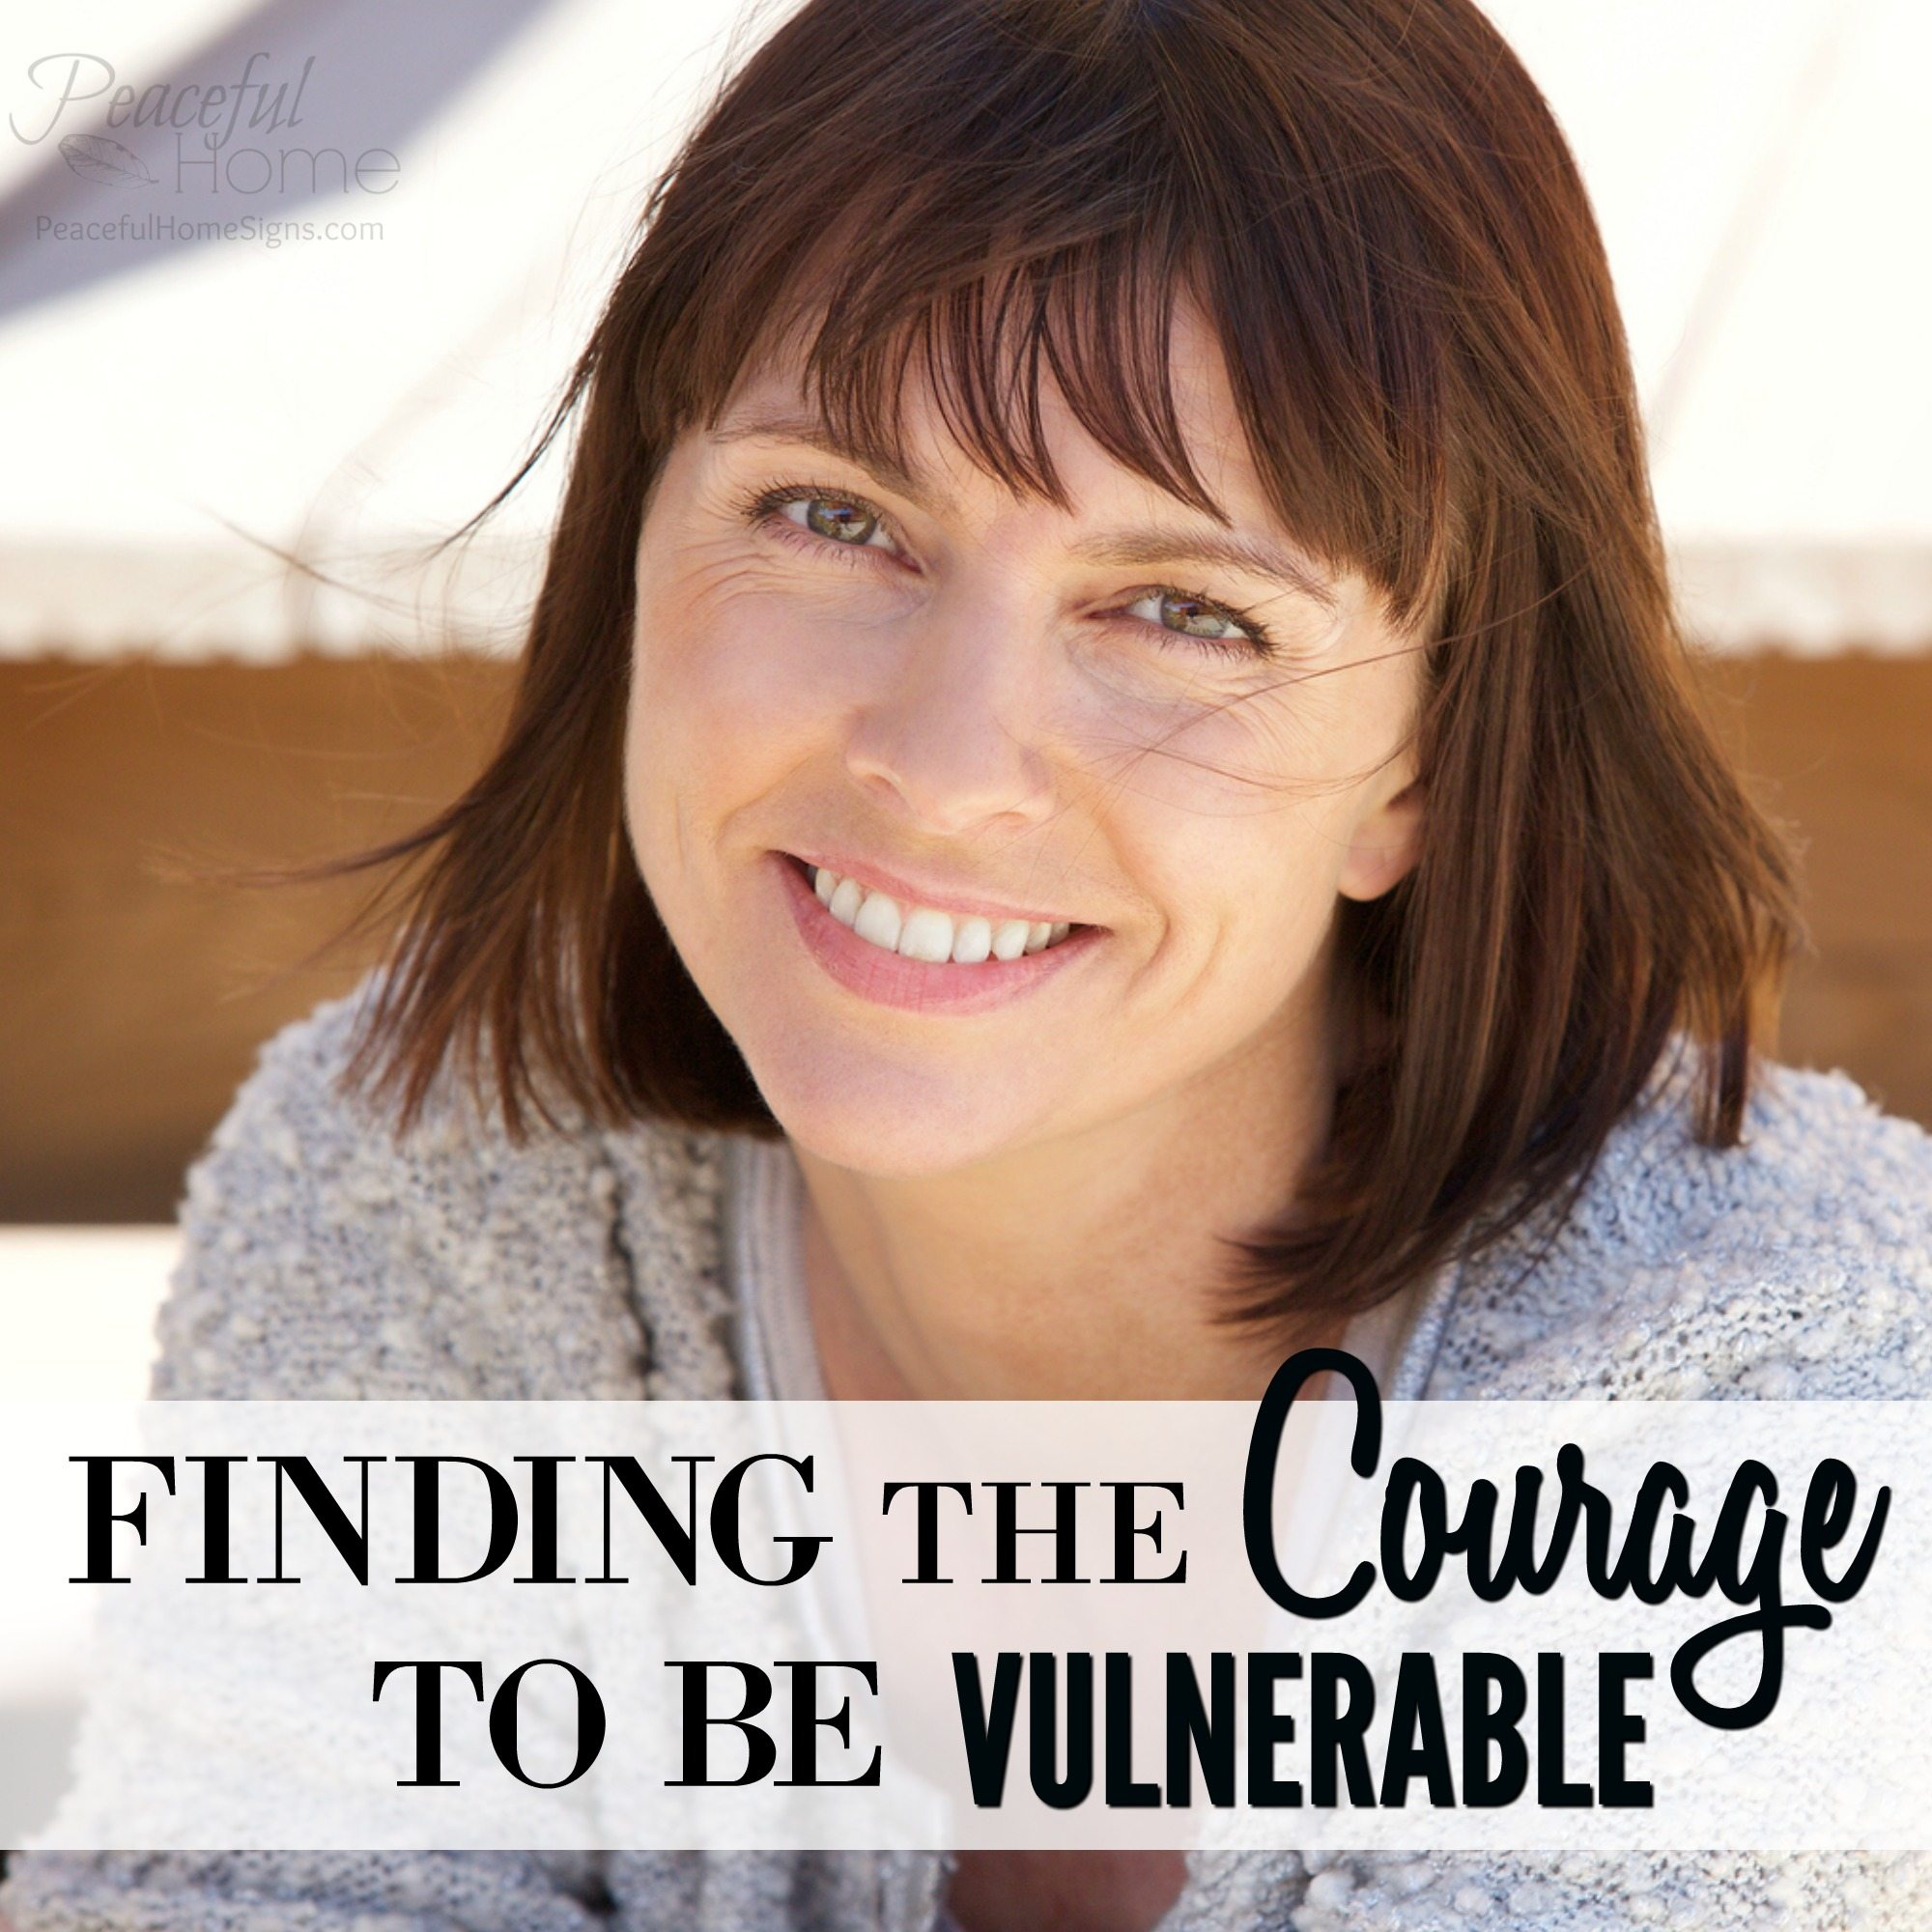 Finding the Courage to Be Vulnerable